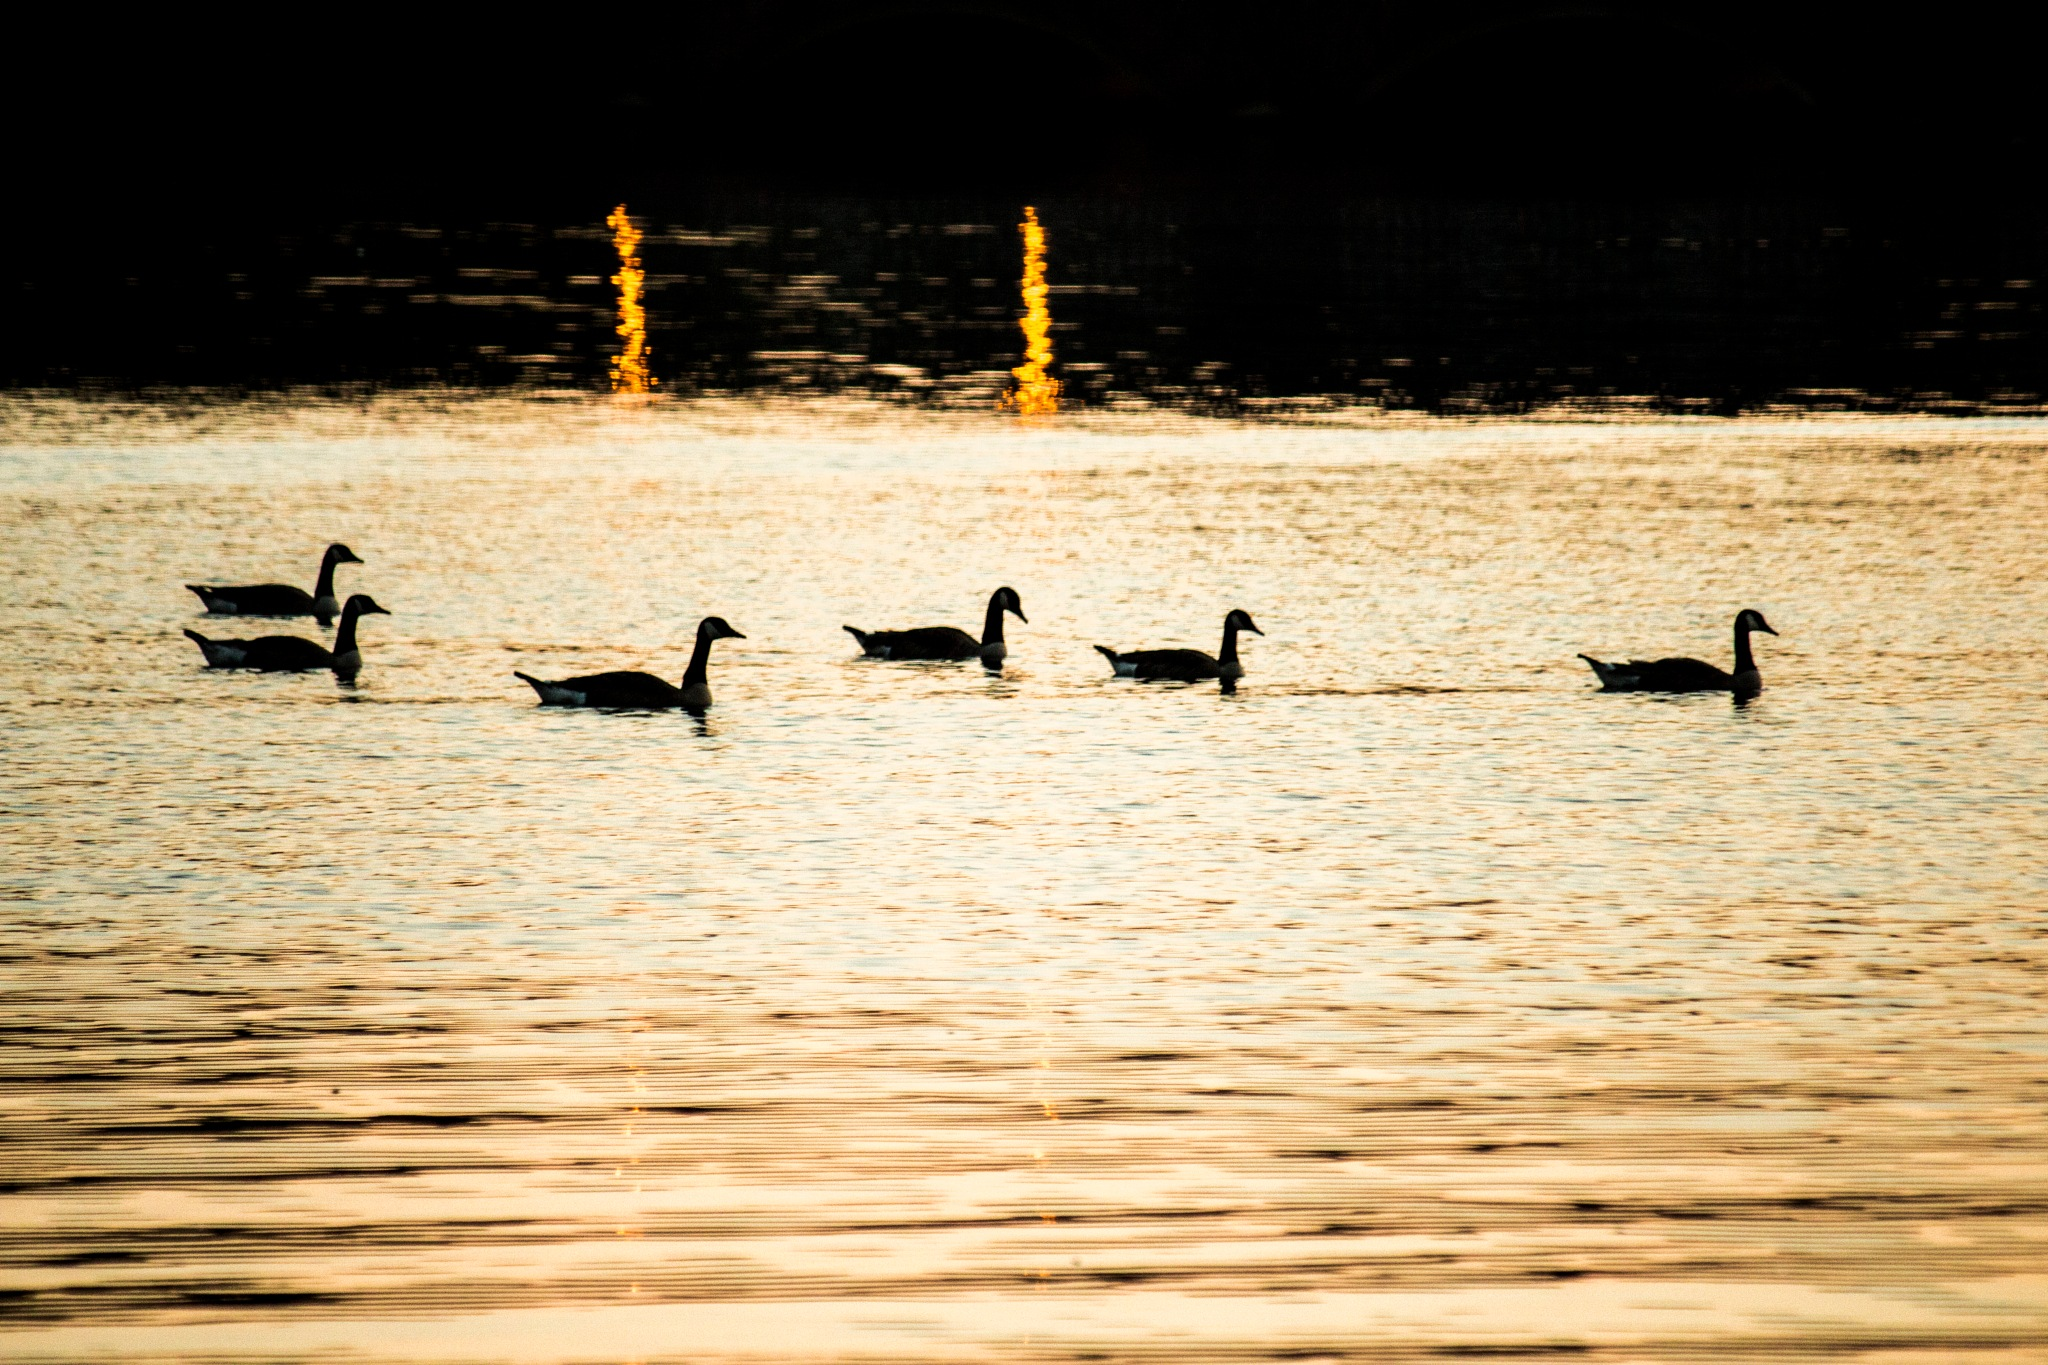 Geese at Sunset by Eric Richard Satter